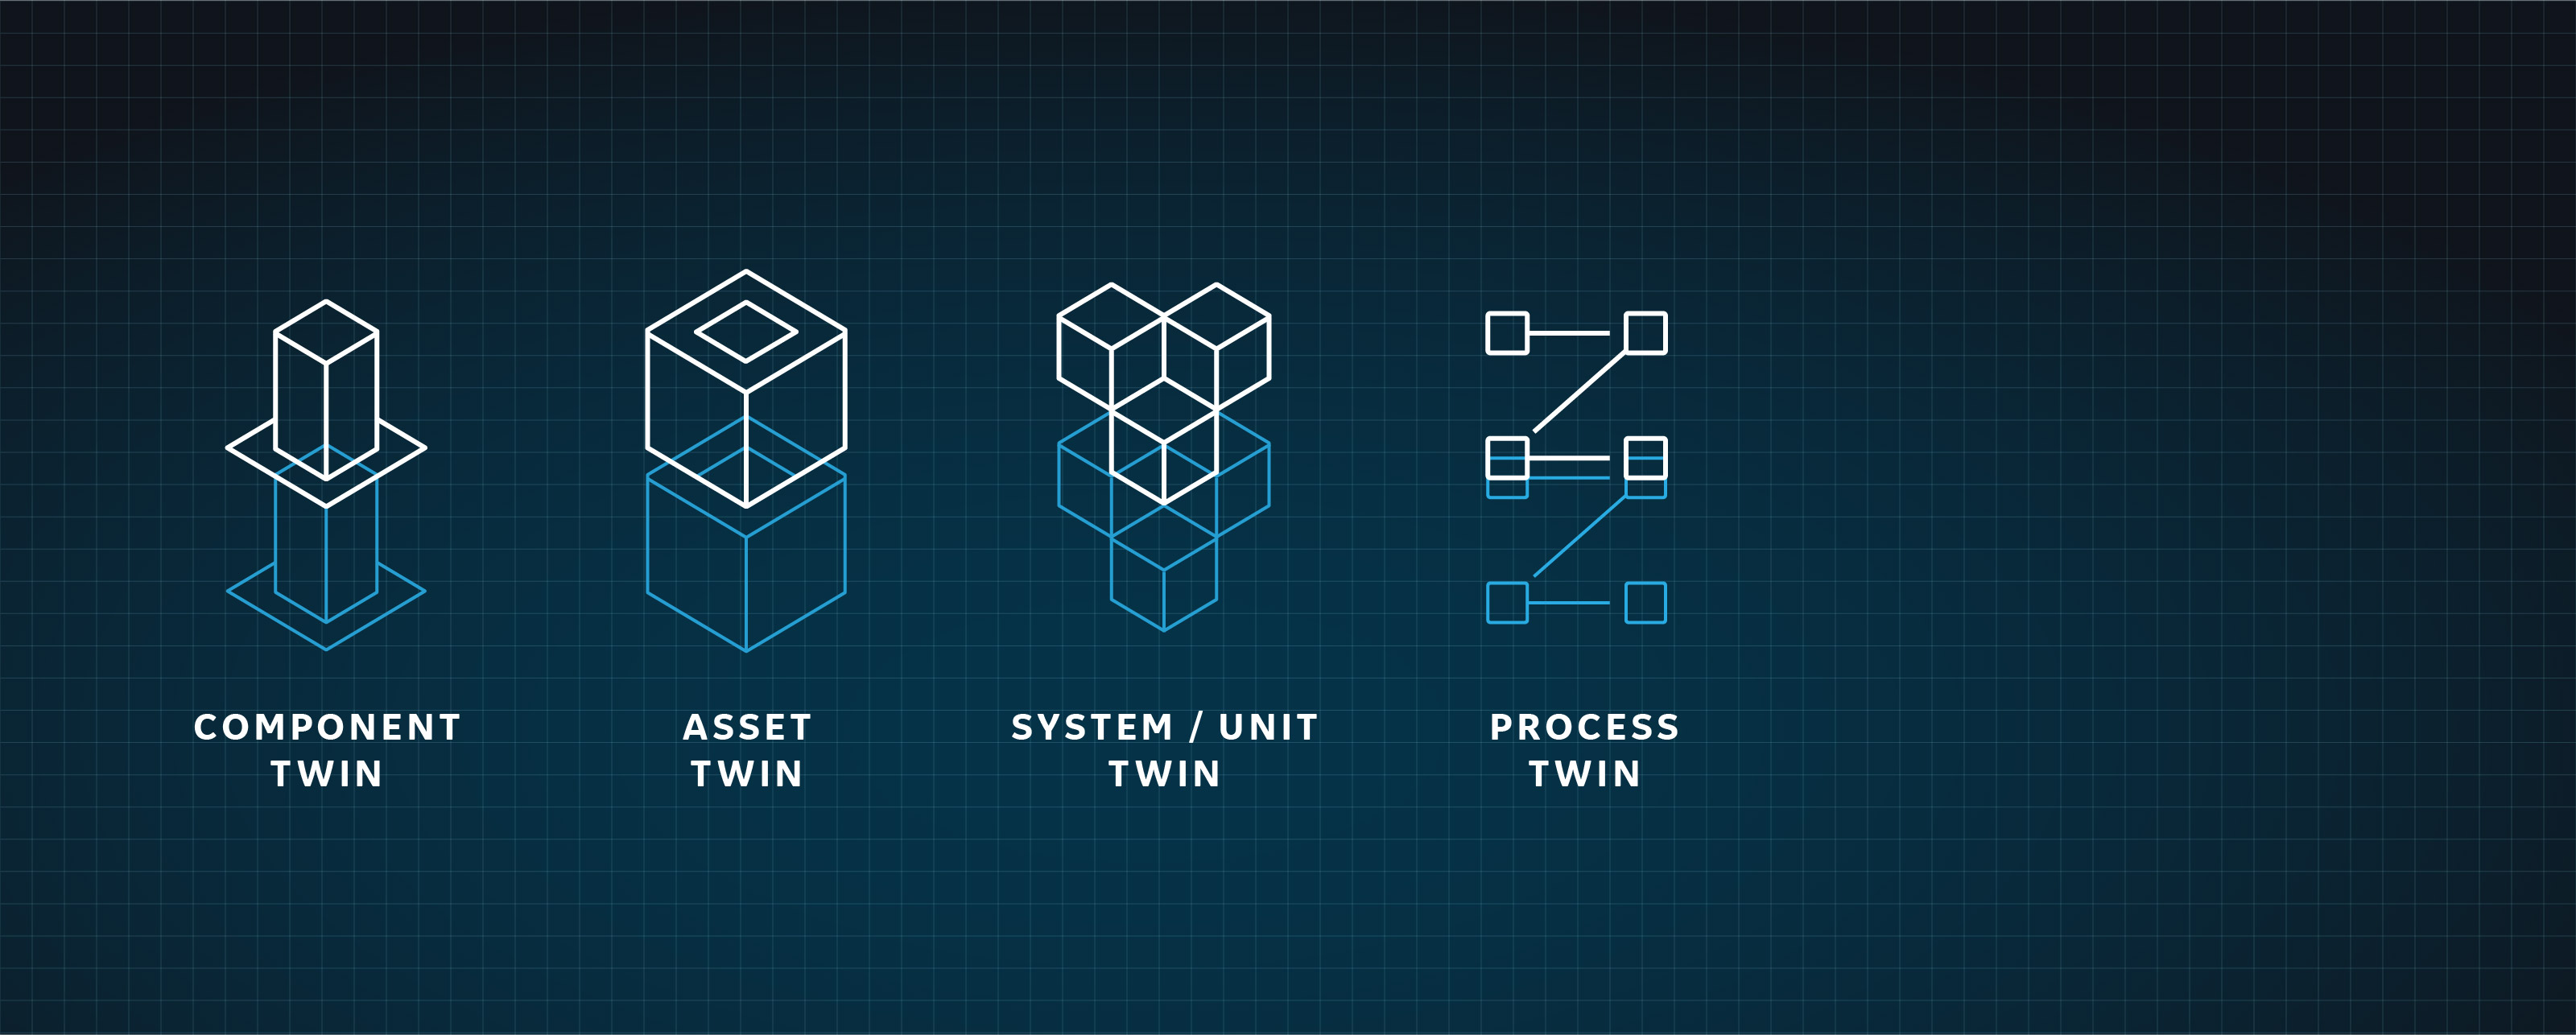 Types of digital twin